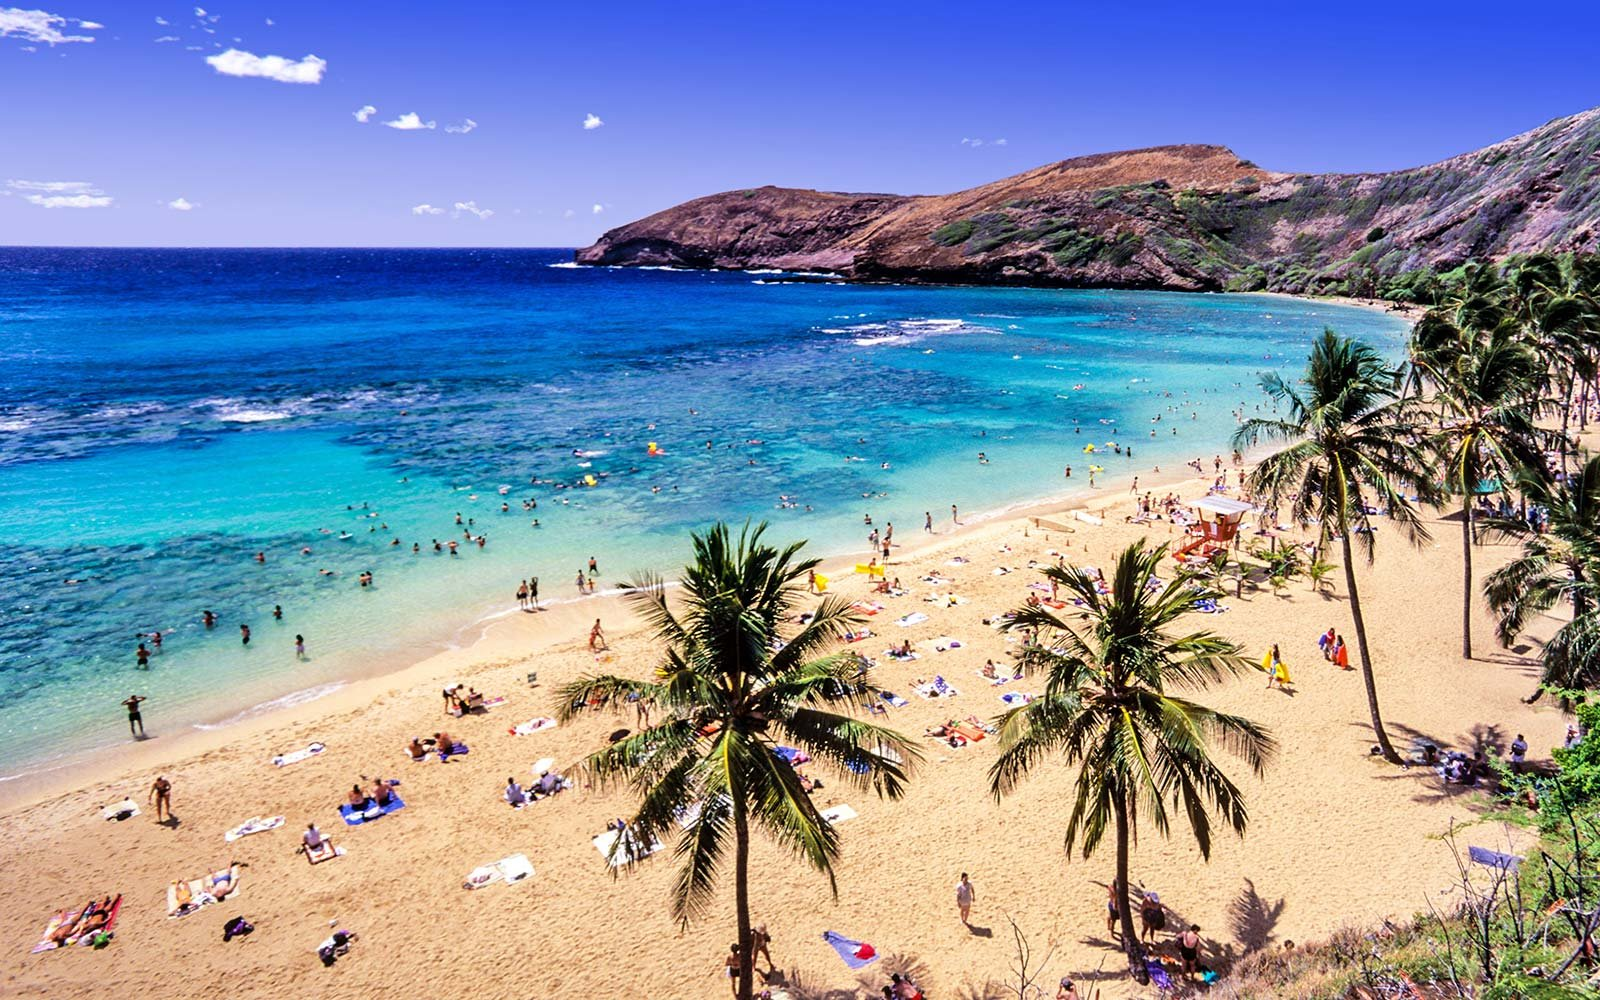 Cheap Flights to Hawaii Are Finally Here Starting at 344 Round